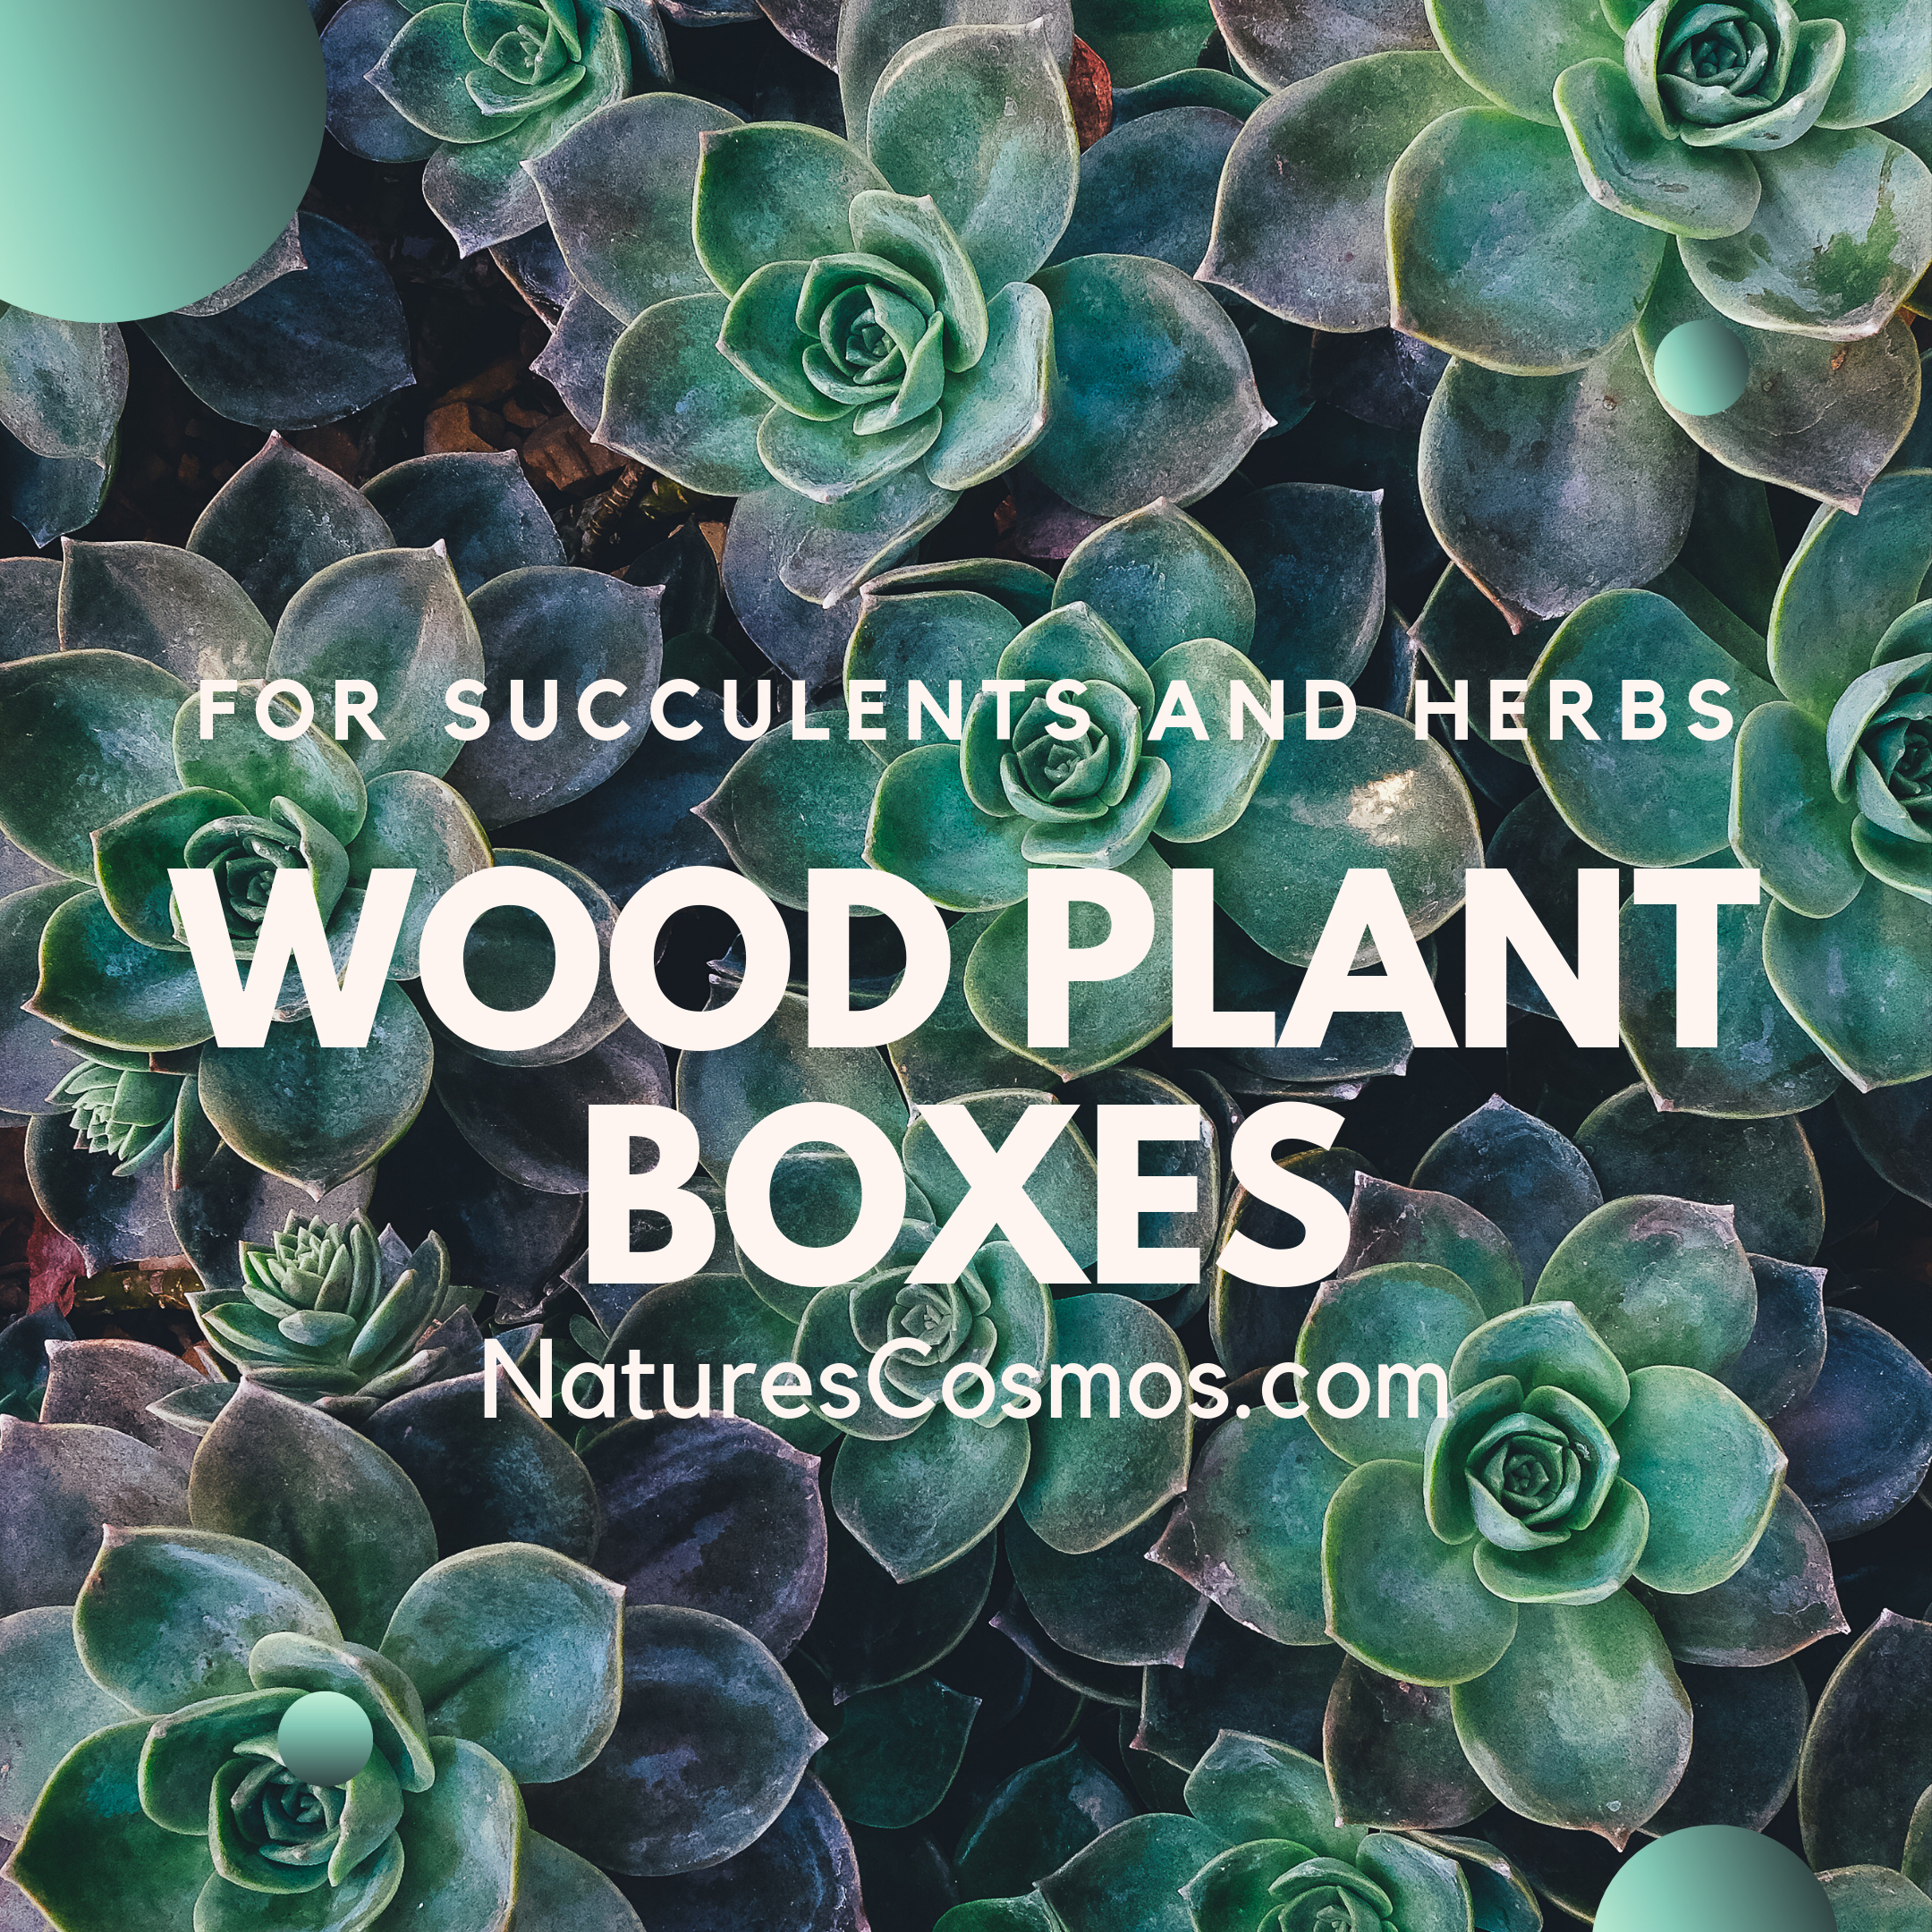 Plant Boxes Plant your favorite herbs and succulents in our vintage wooden plant box. Set it in your kitchen window or out on your porch! Plant Boxes Plant your favorite herbs and succulents in our vintage wooden plant box. Set it in your kitchen window or out on your porch! Plant your favorite herbs and succulents in our vi